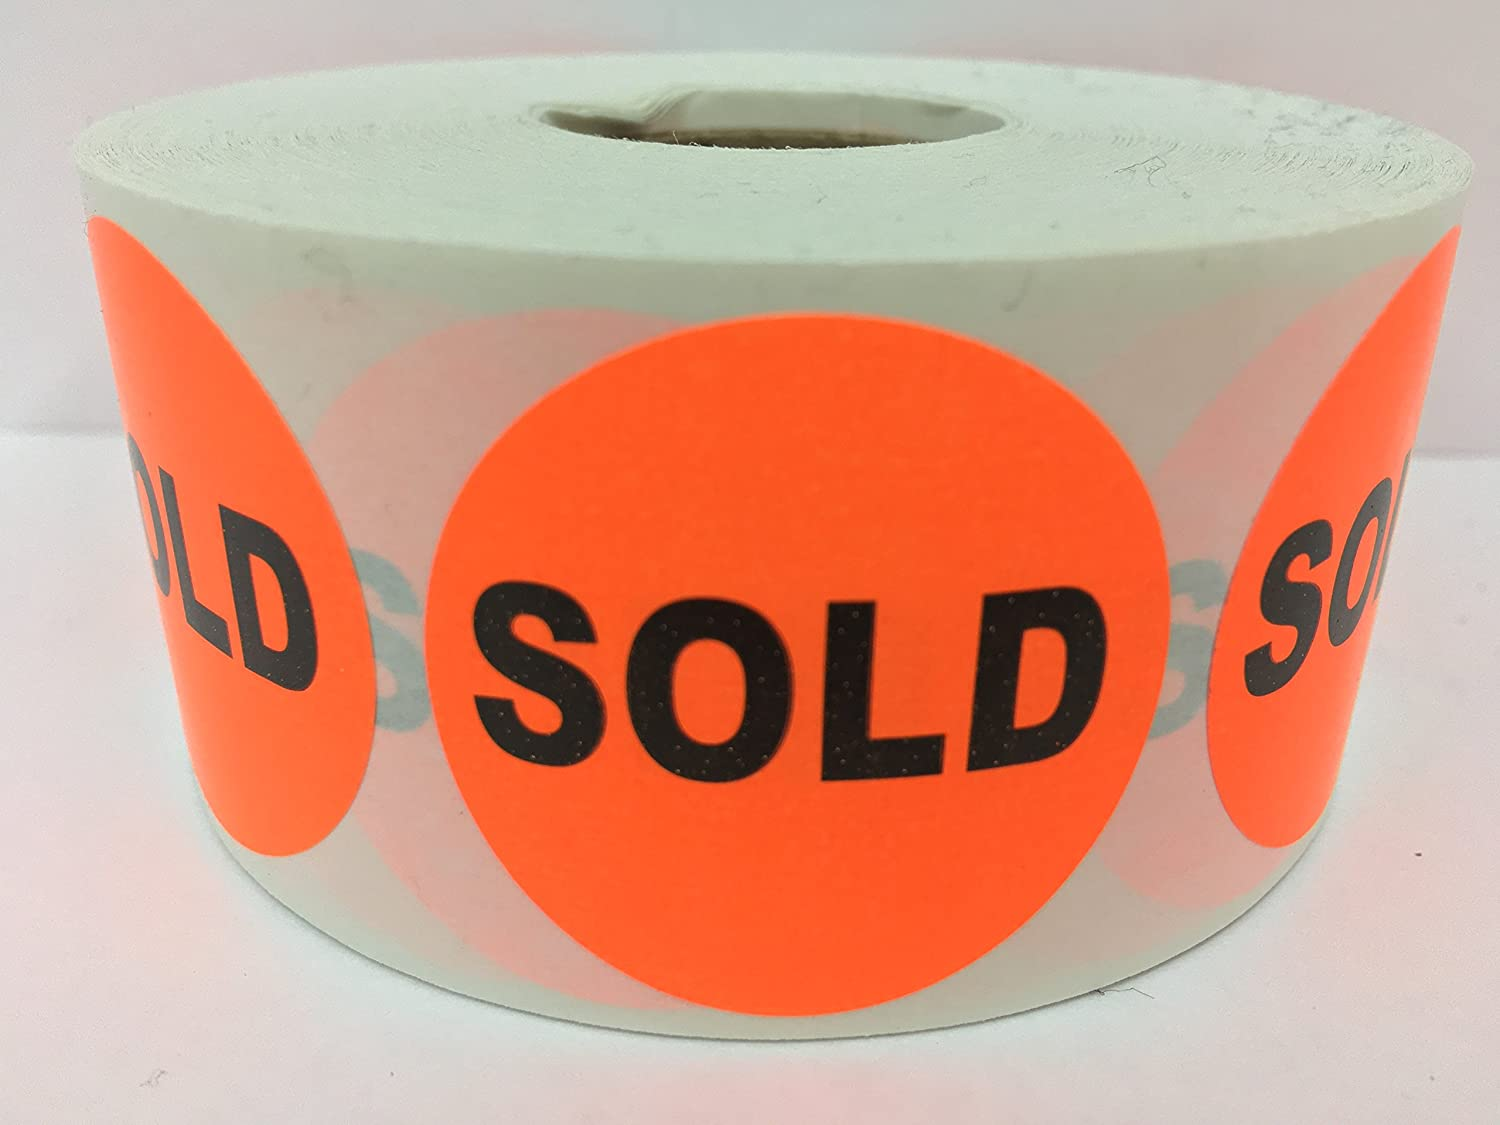 1000 Labels 1.5' Round SOLD Point of Sale Pricing Inventory Control Retail Stickers 1 Roll Labels and More